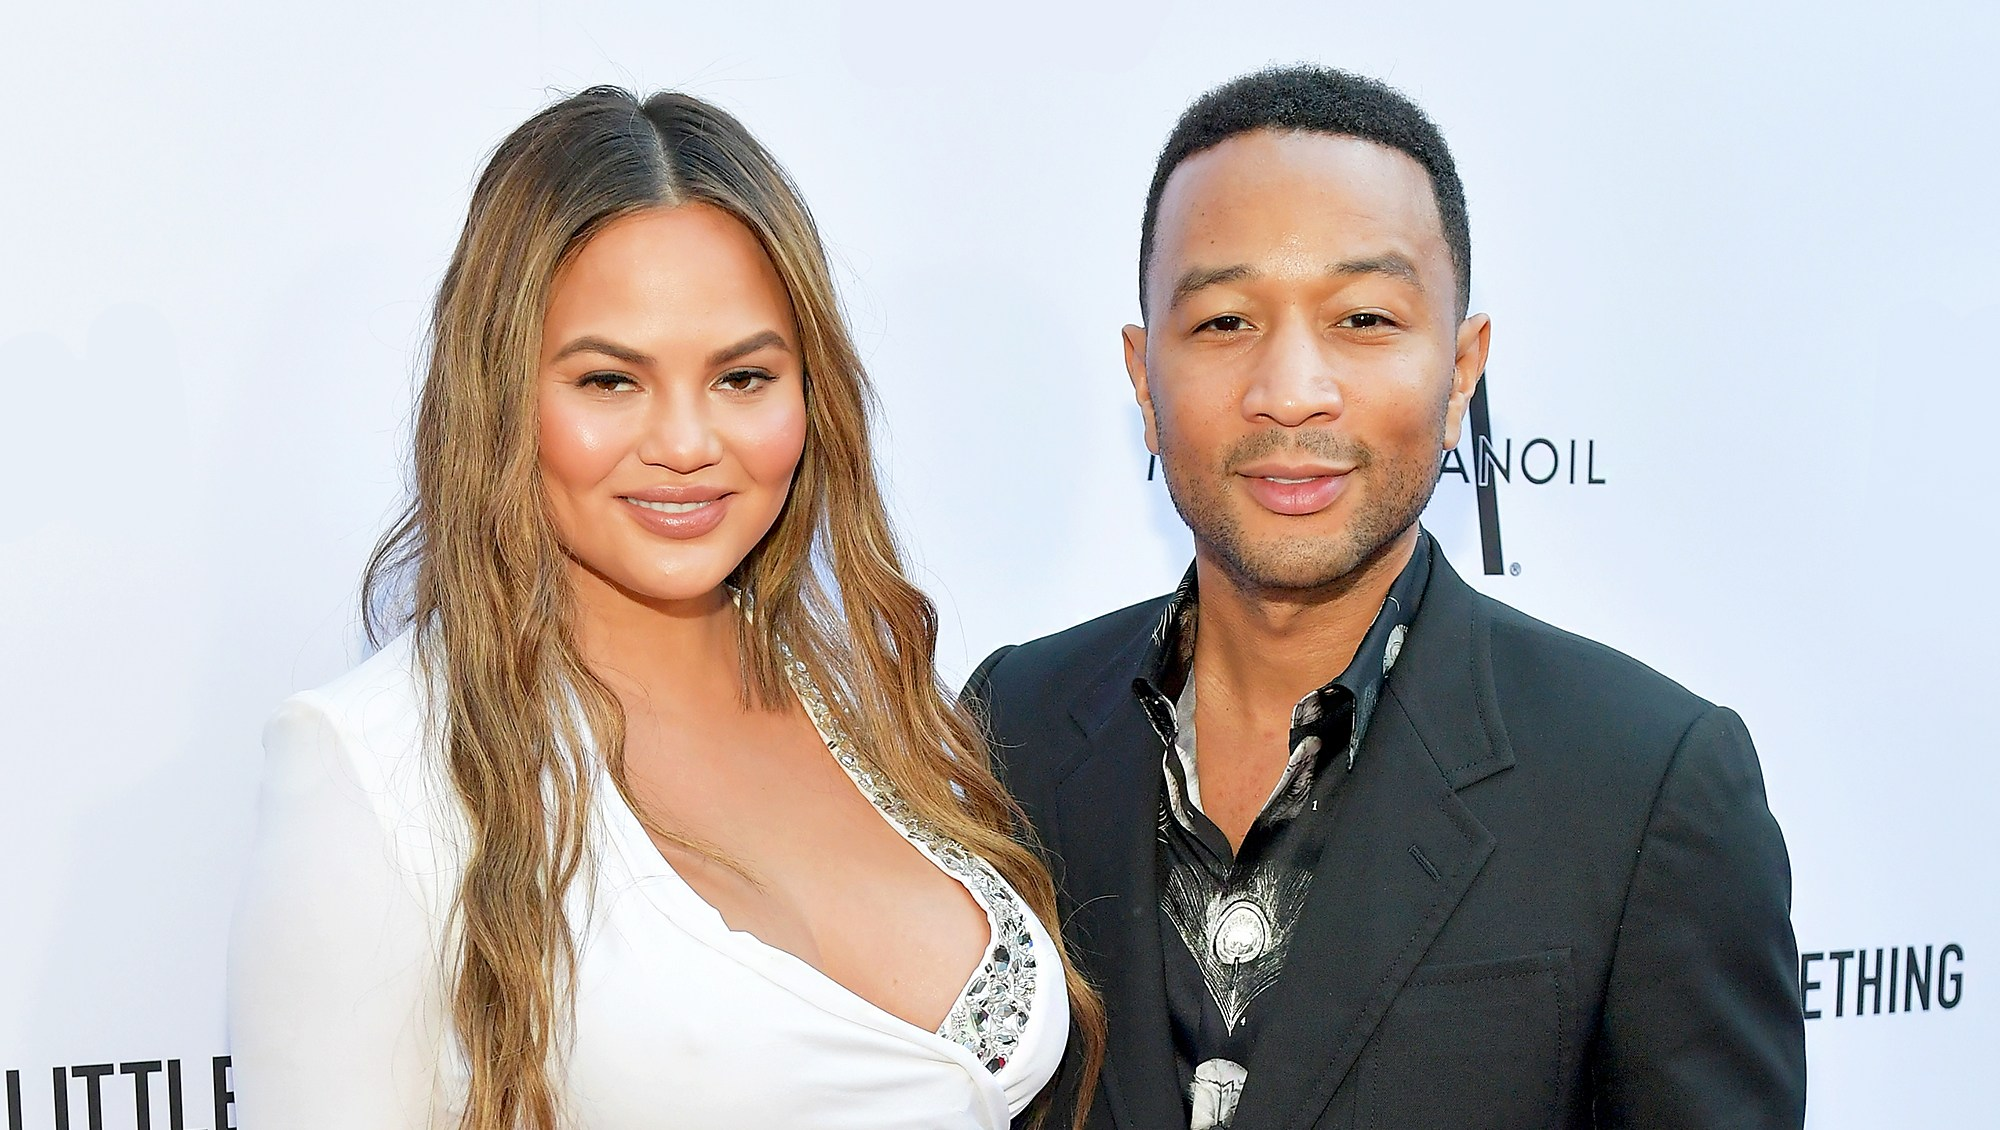 Chrissy Teigen and John Legend attend The Daily Front Row's 4th Annual Fashion Los Angeles Awards at Beverly Hills Hotel on April 8, 2018 in Beverly Hills, California.